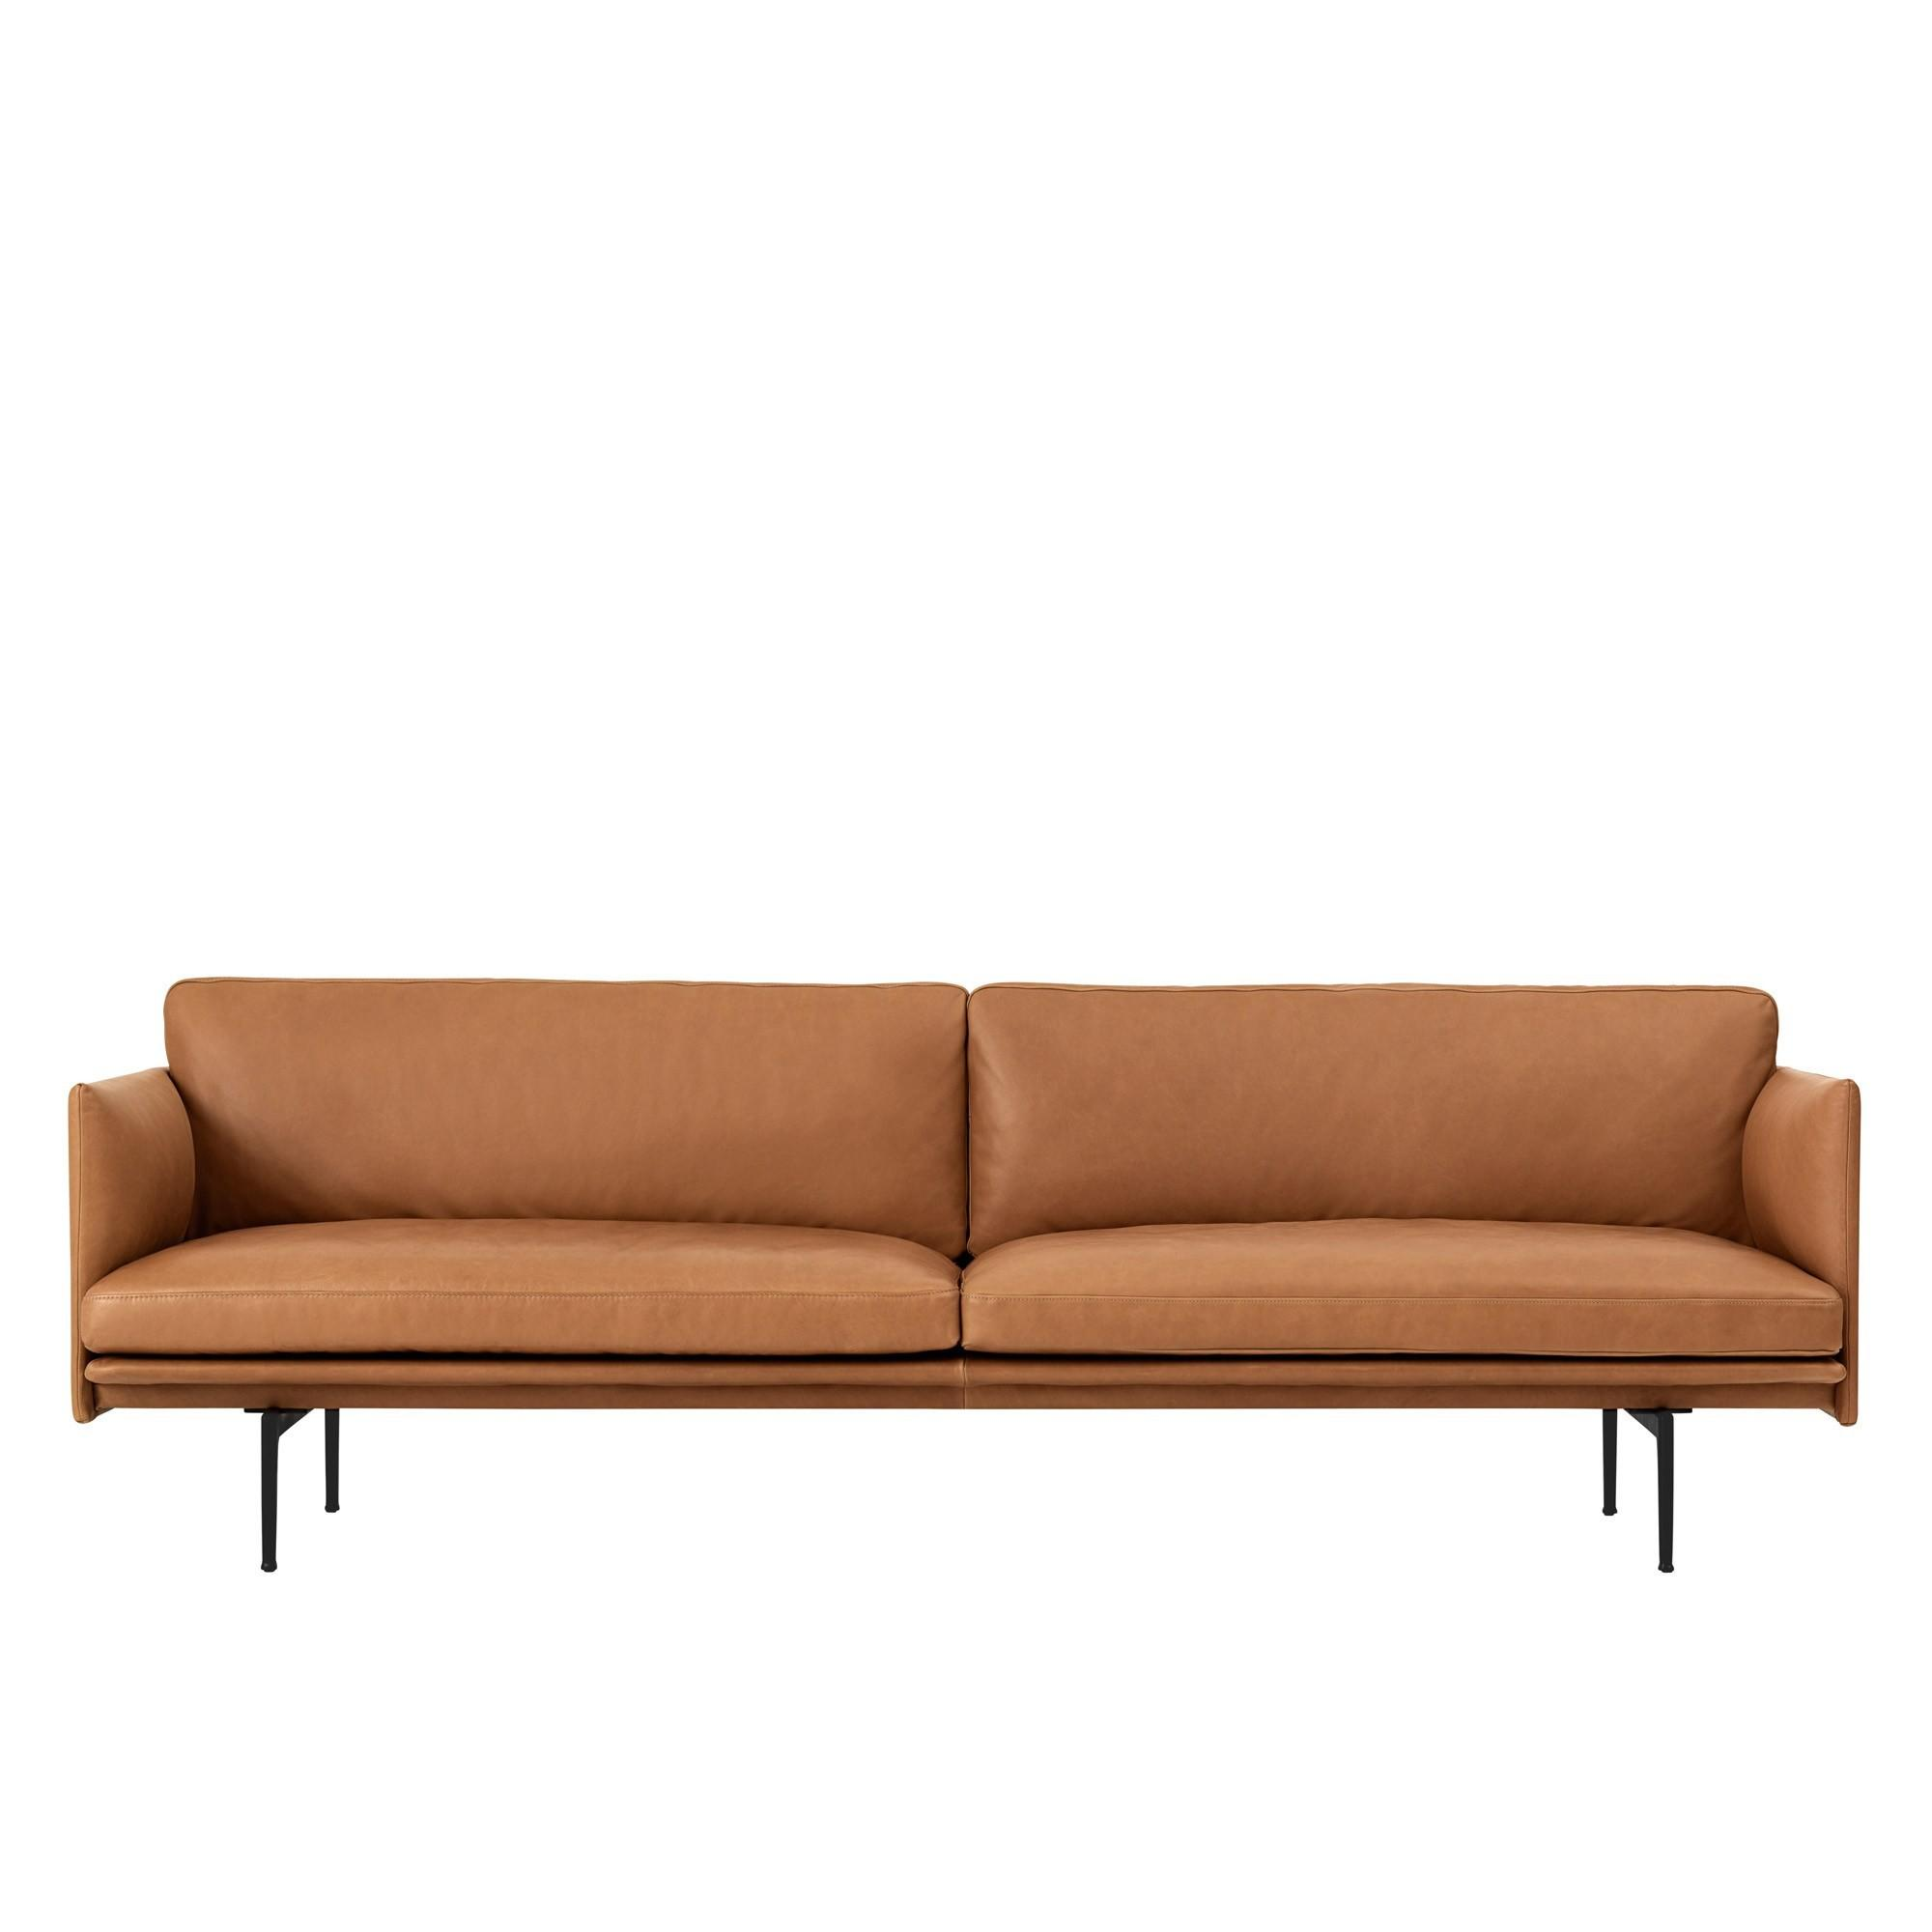 Sofa Day Beds Daybeds West Elm Thesofa